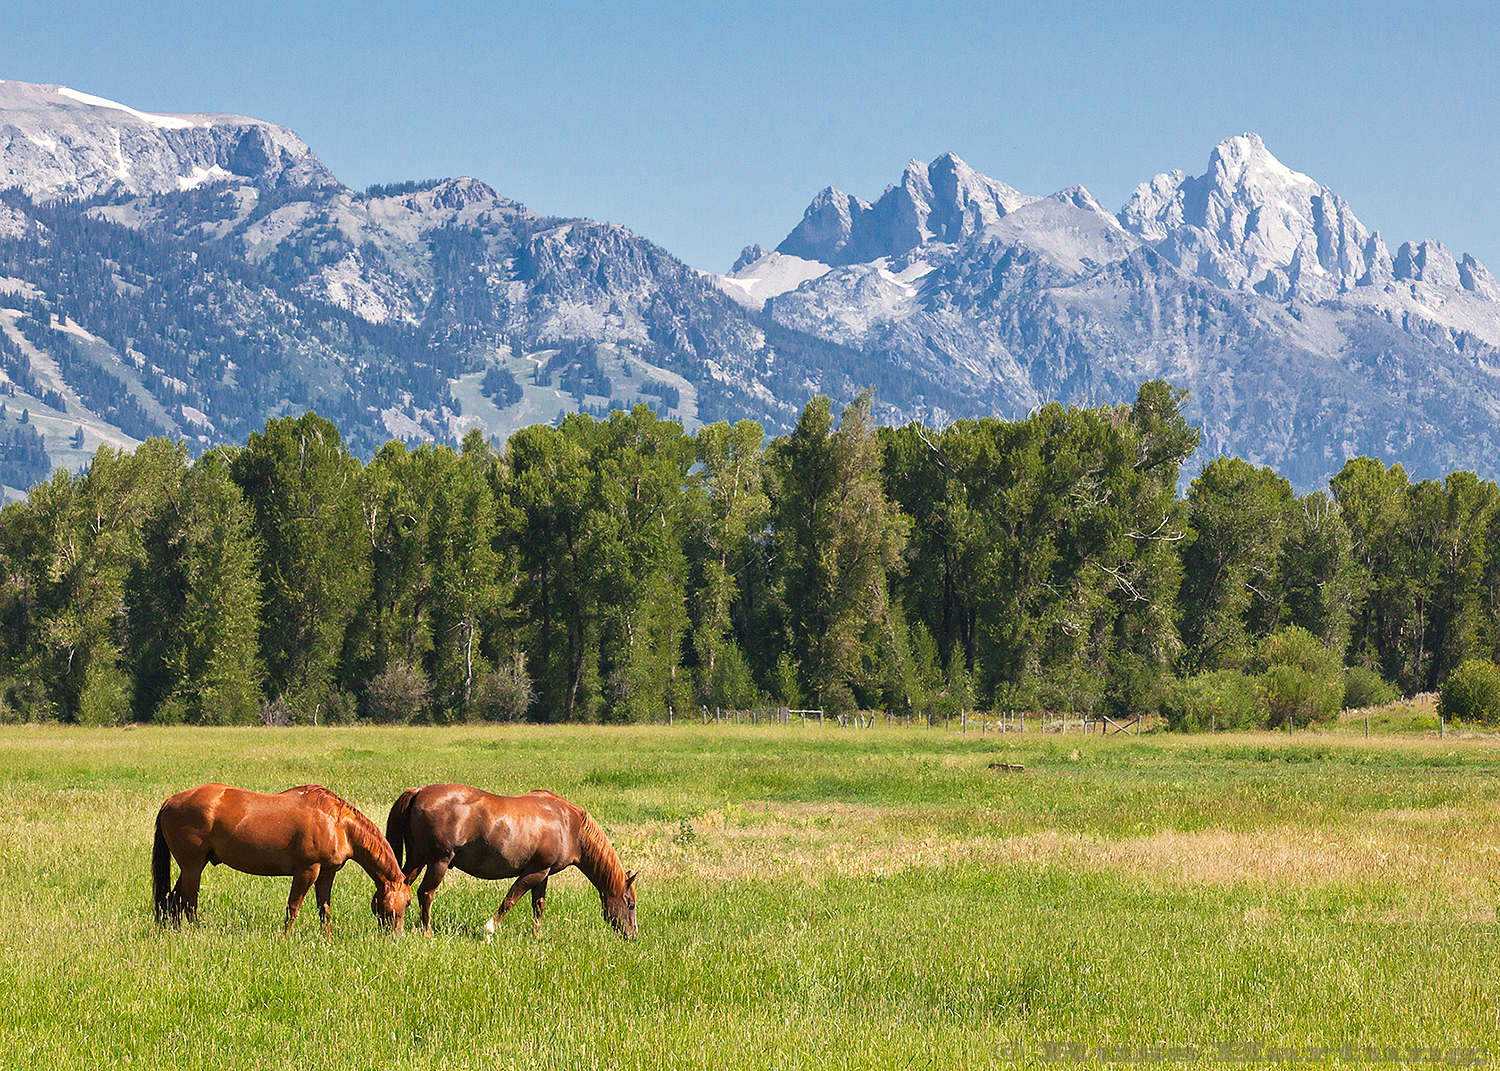 A horse pasture in Jackson, Wyoming with the Tetons in the background.